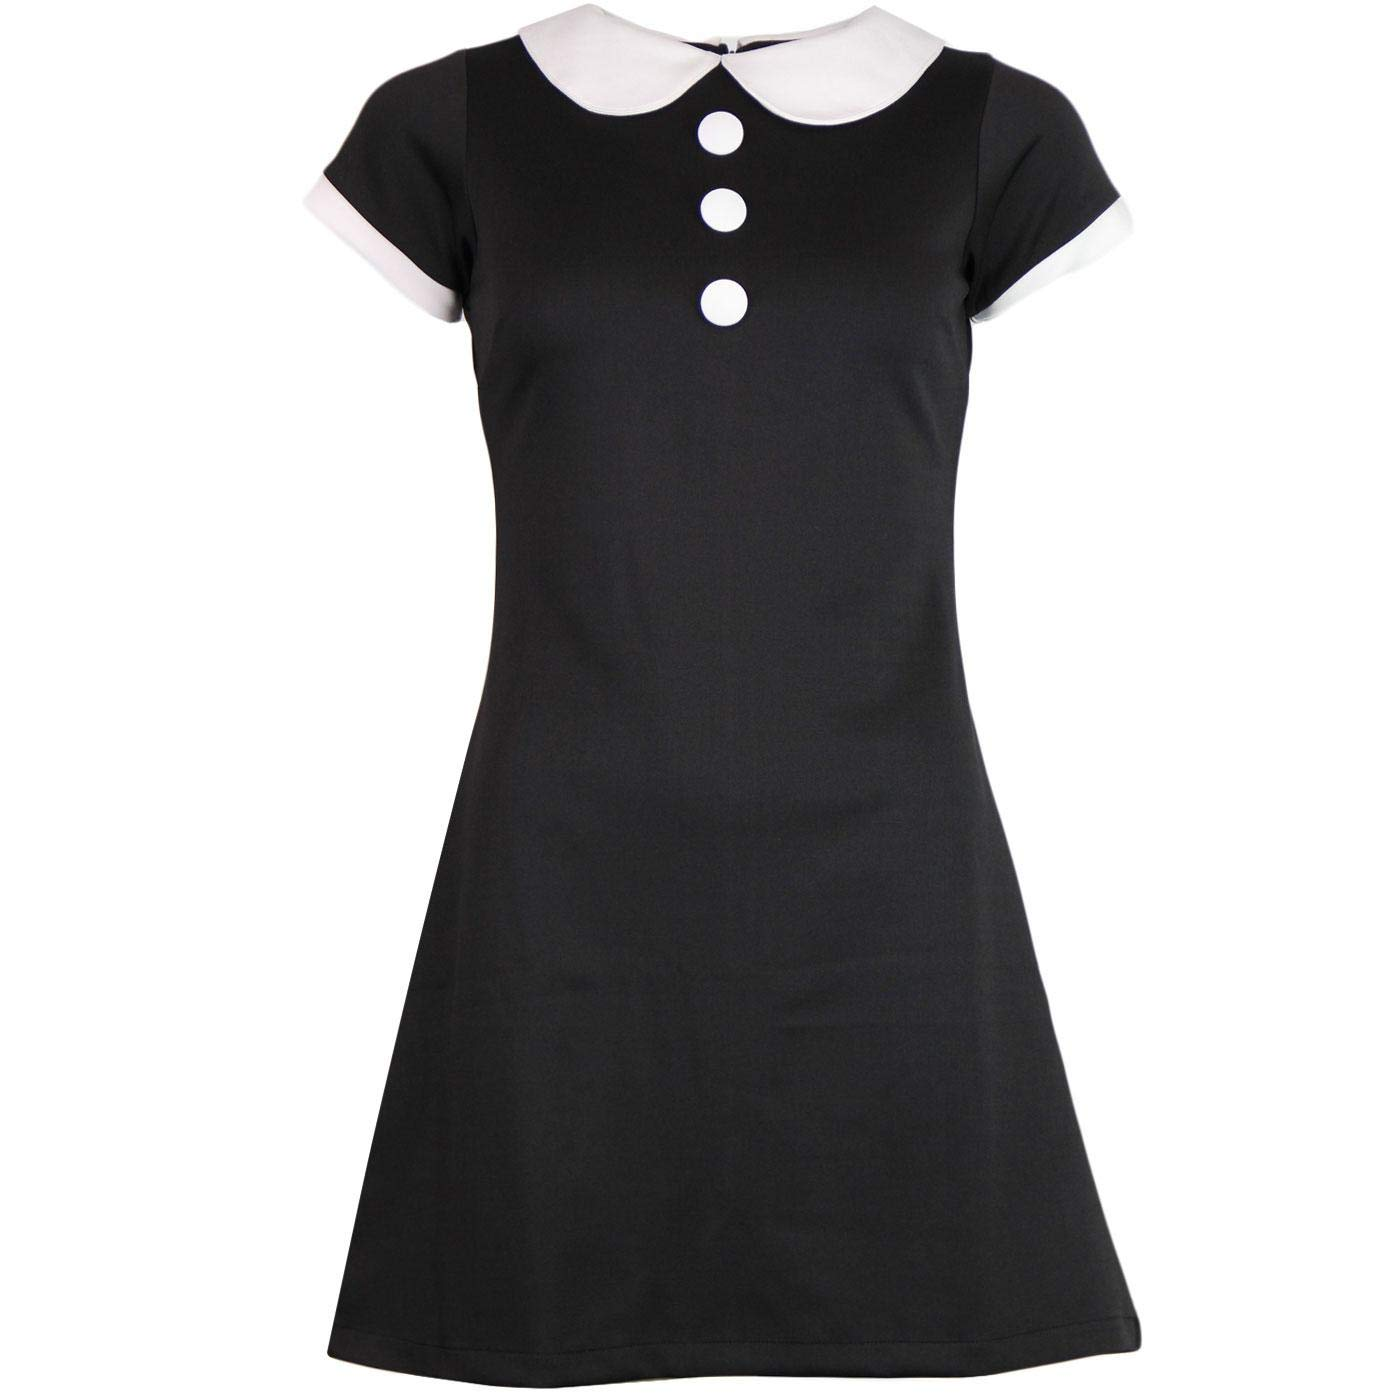 500 Vintage Style Dresses for Sale | Vintage Inspired Dresses Madcap England Dollierocker Retro 60s Mod Peter Pan Collar Jersey Mini Dress £39.99 AT vintagedancer.com